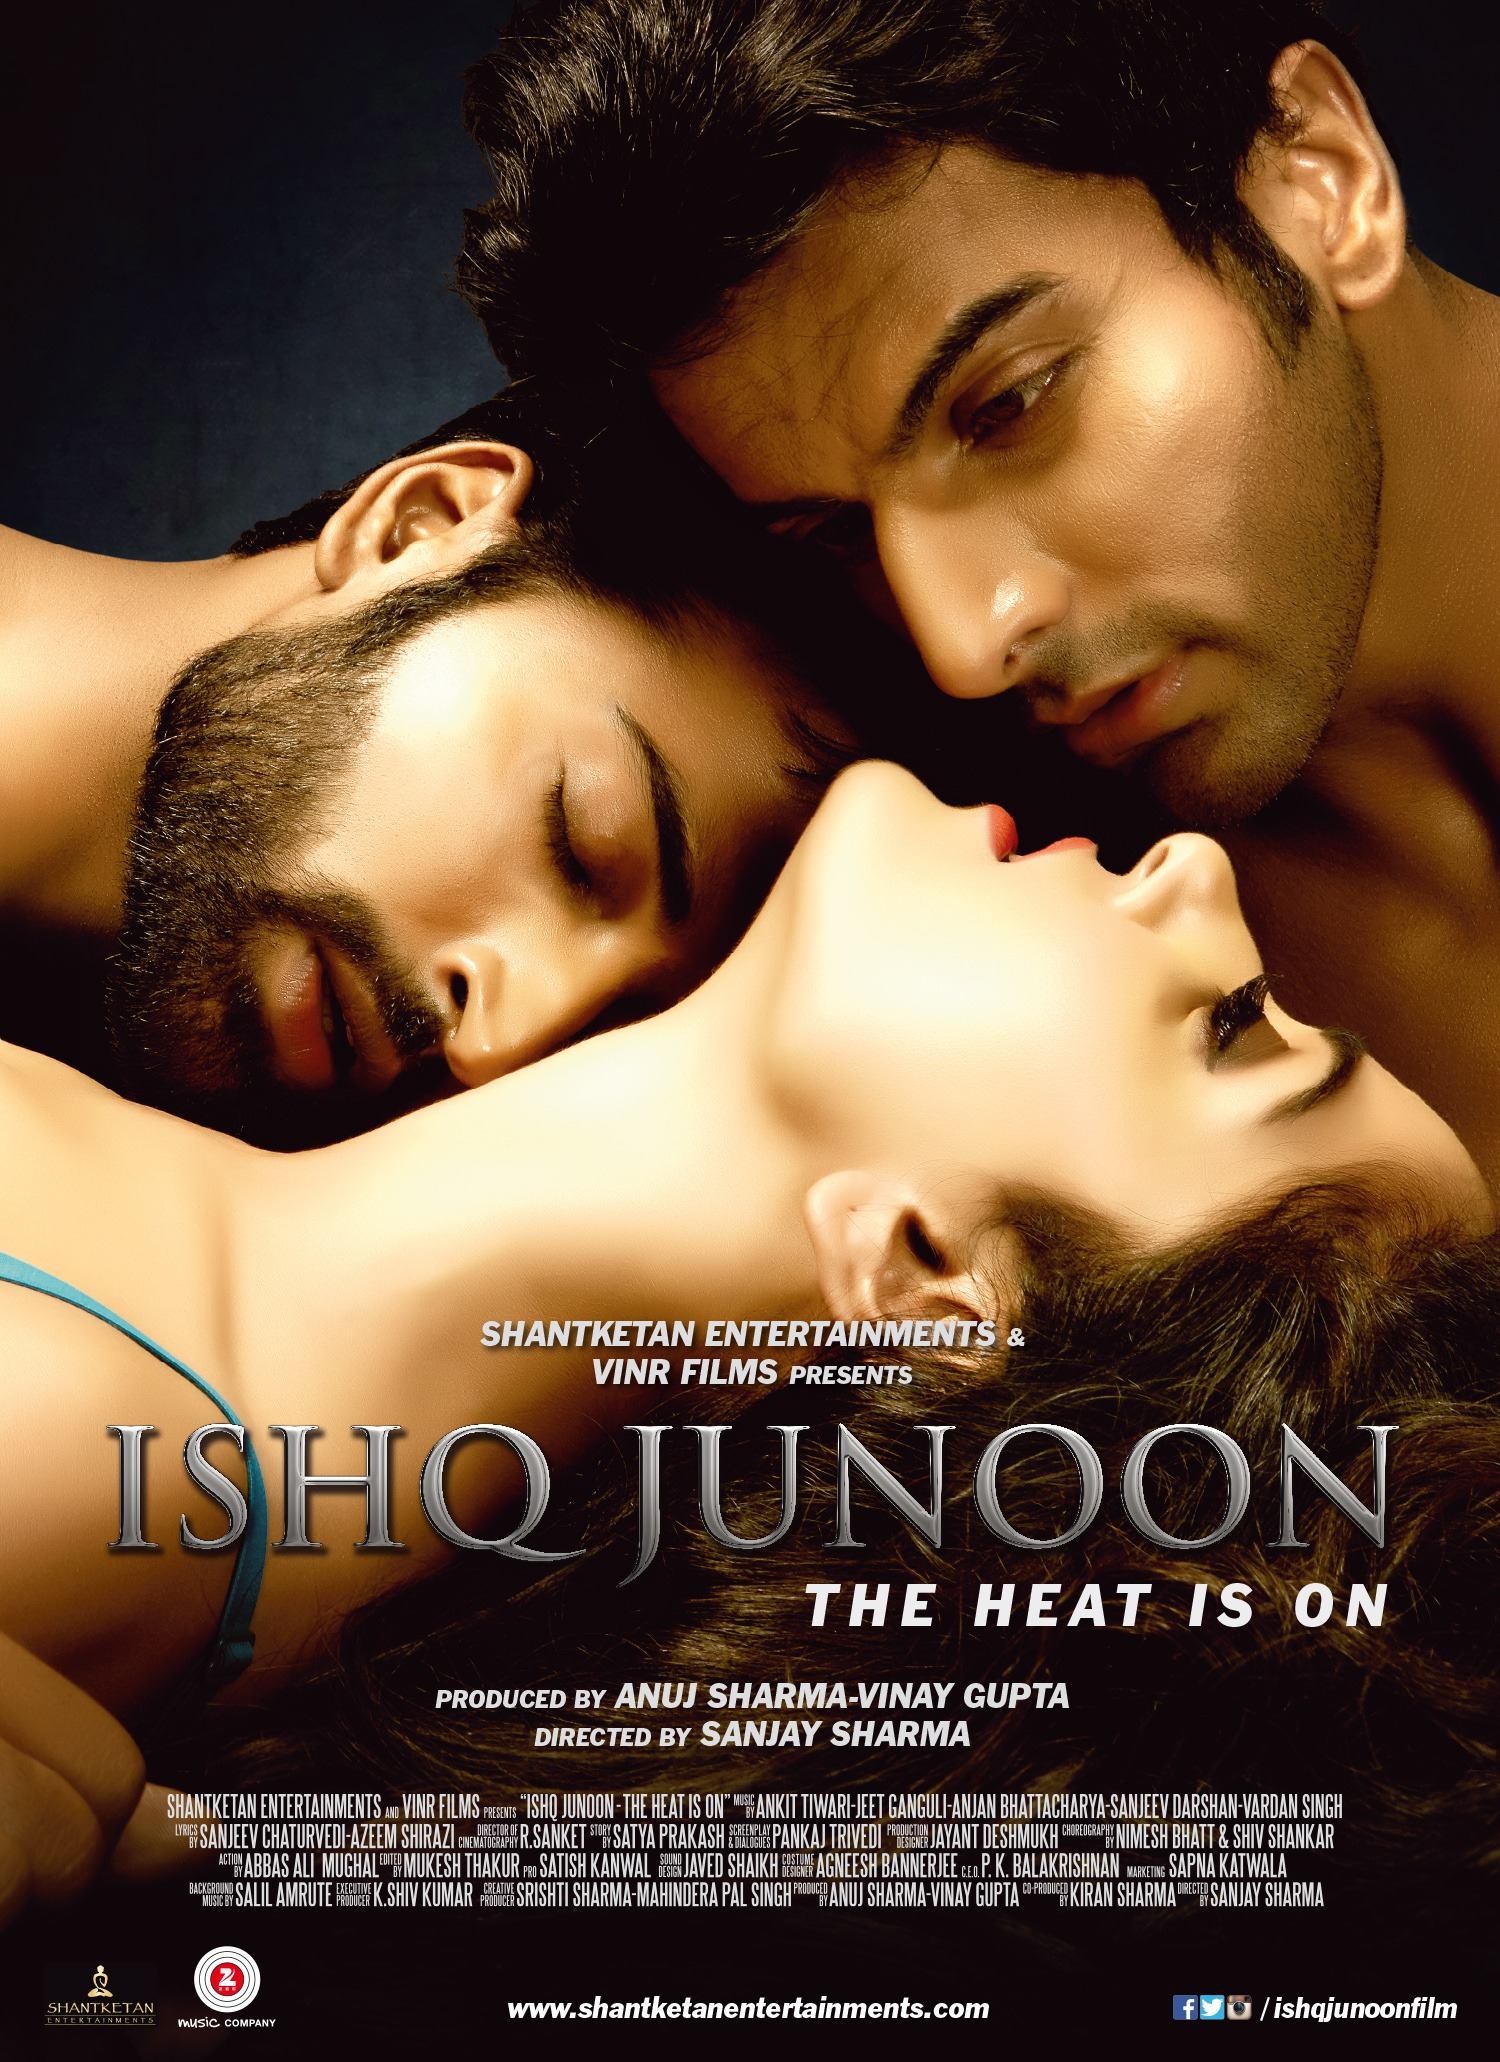 Ishq Junoon: The Heat is On (2016) - IMDb